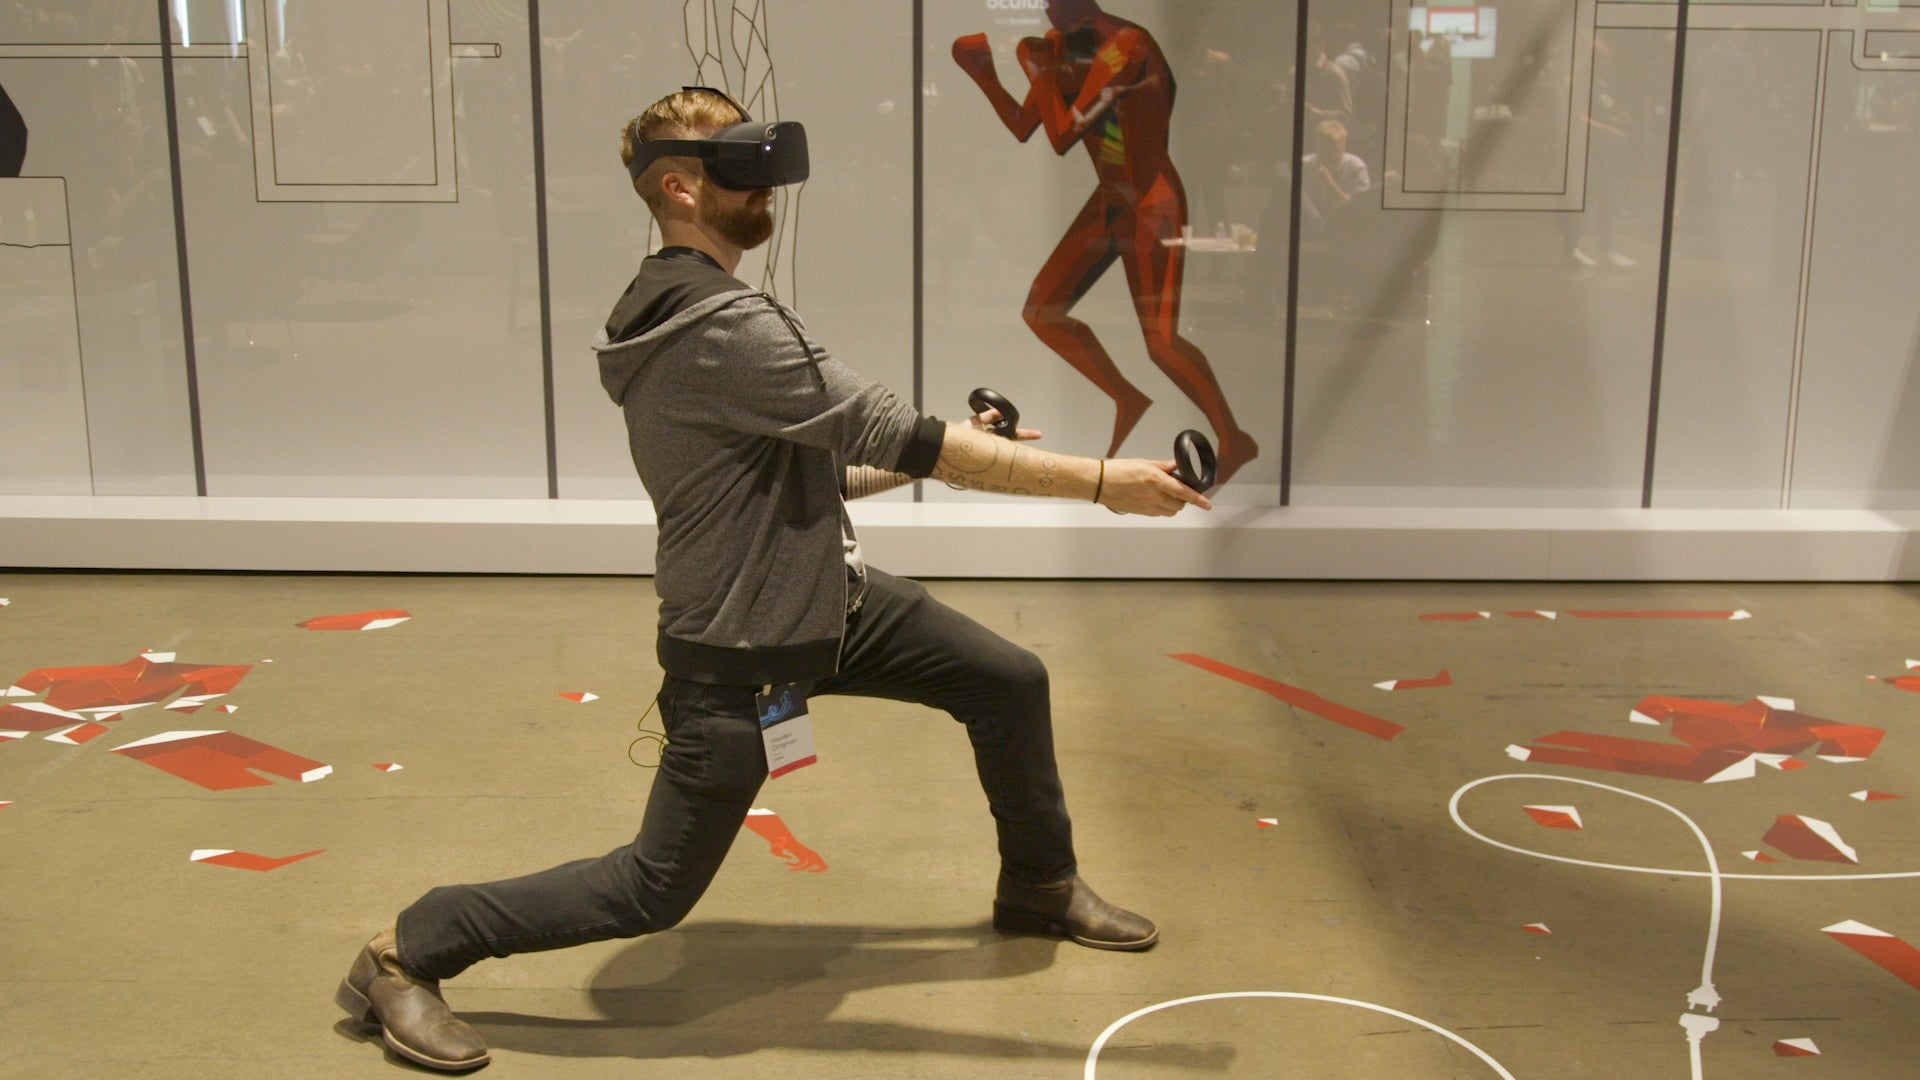 Vr Headset Comparison >> Oculus Quest impressions: This no-hassle wireless VR ...